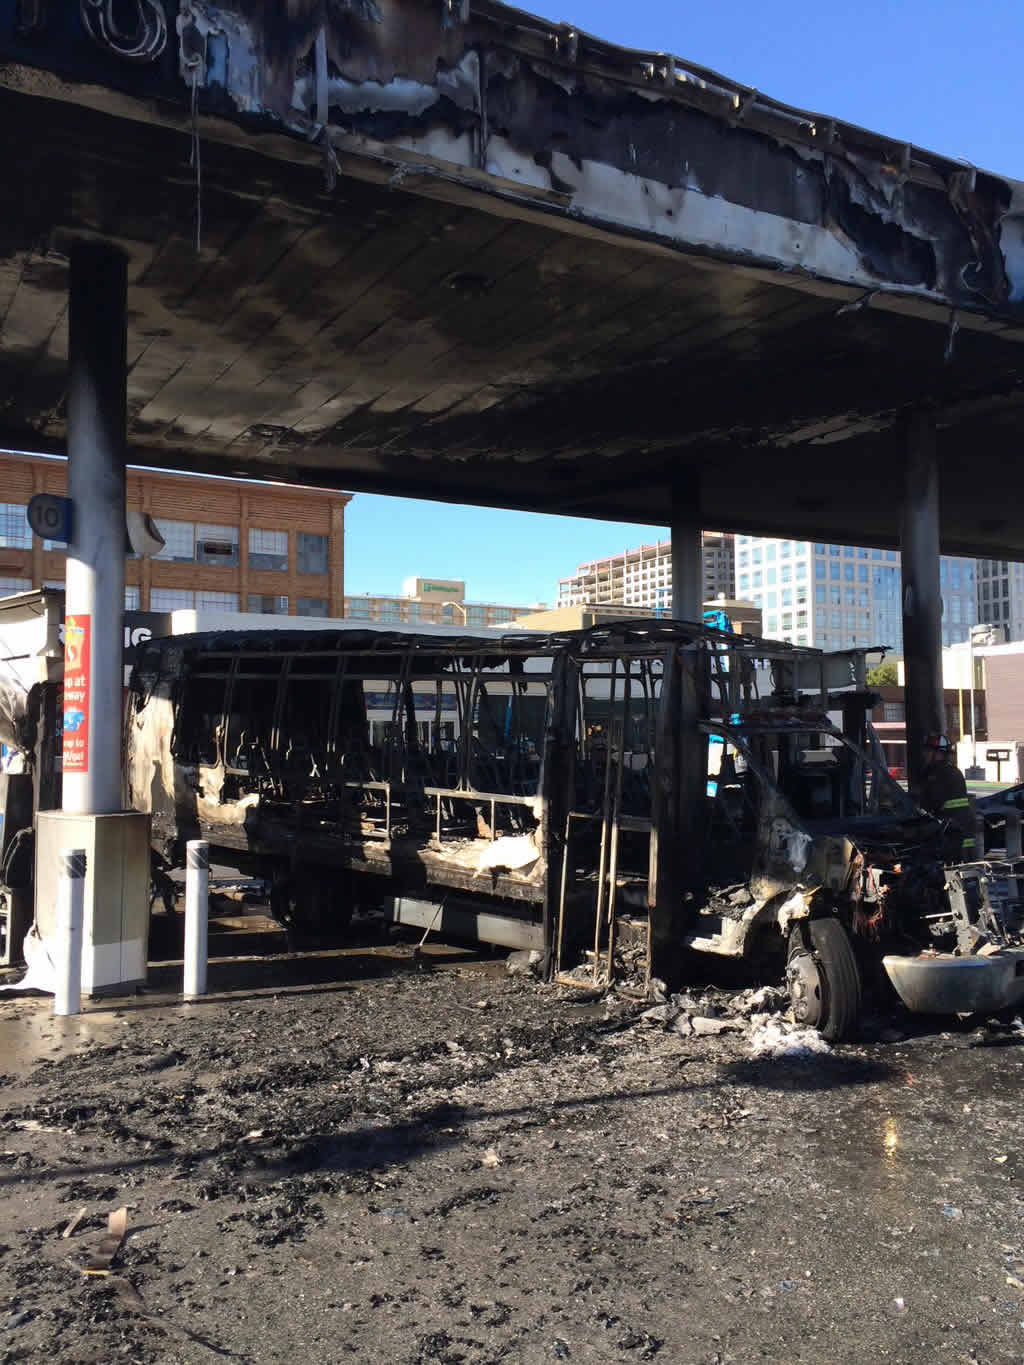 """<div class=""""meta image-caption""""><div class=""""origin-logo origin-image none""""><span>none</span></div><span class=""""caption-text"""">A bus that caught fire at a gas station in San Francisco on Monday, February 29, 2016. (@sffdpio/Twitter)</span></div>"""